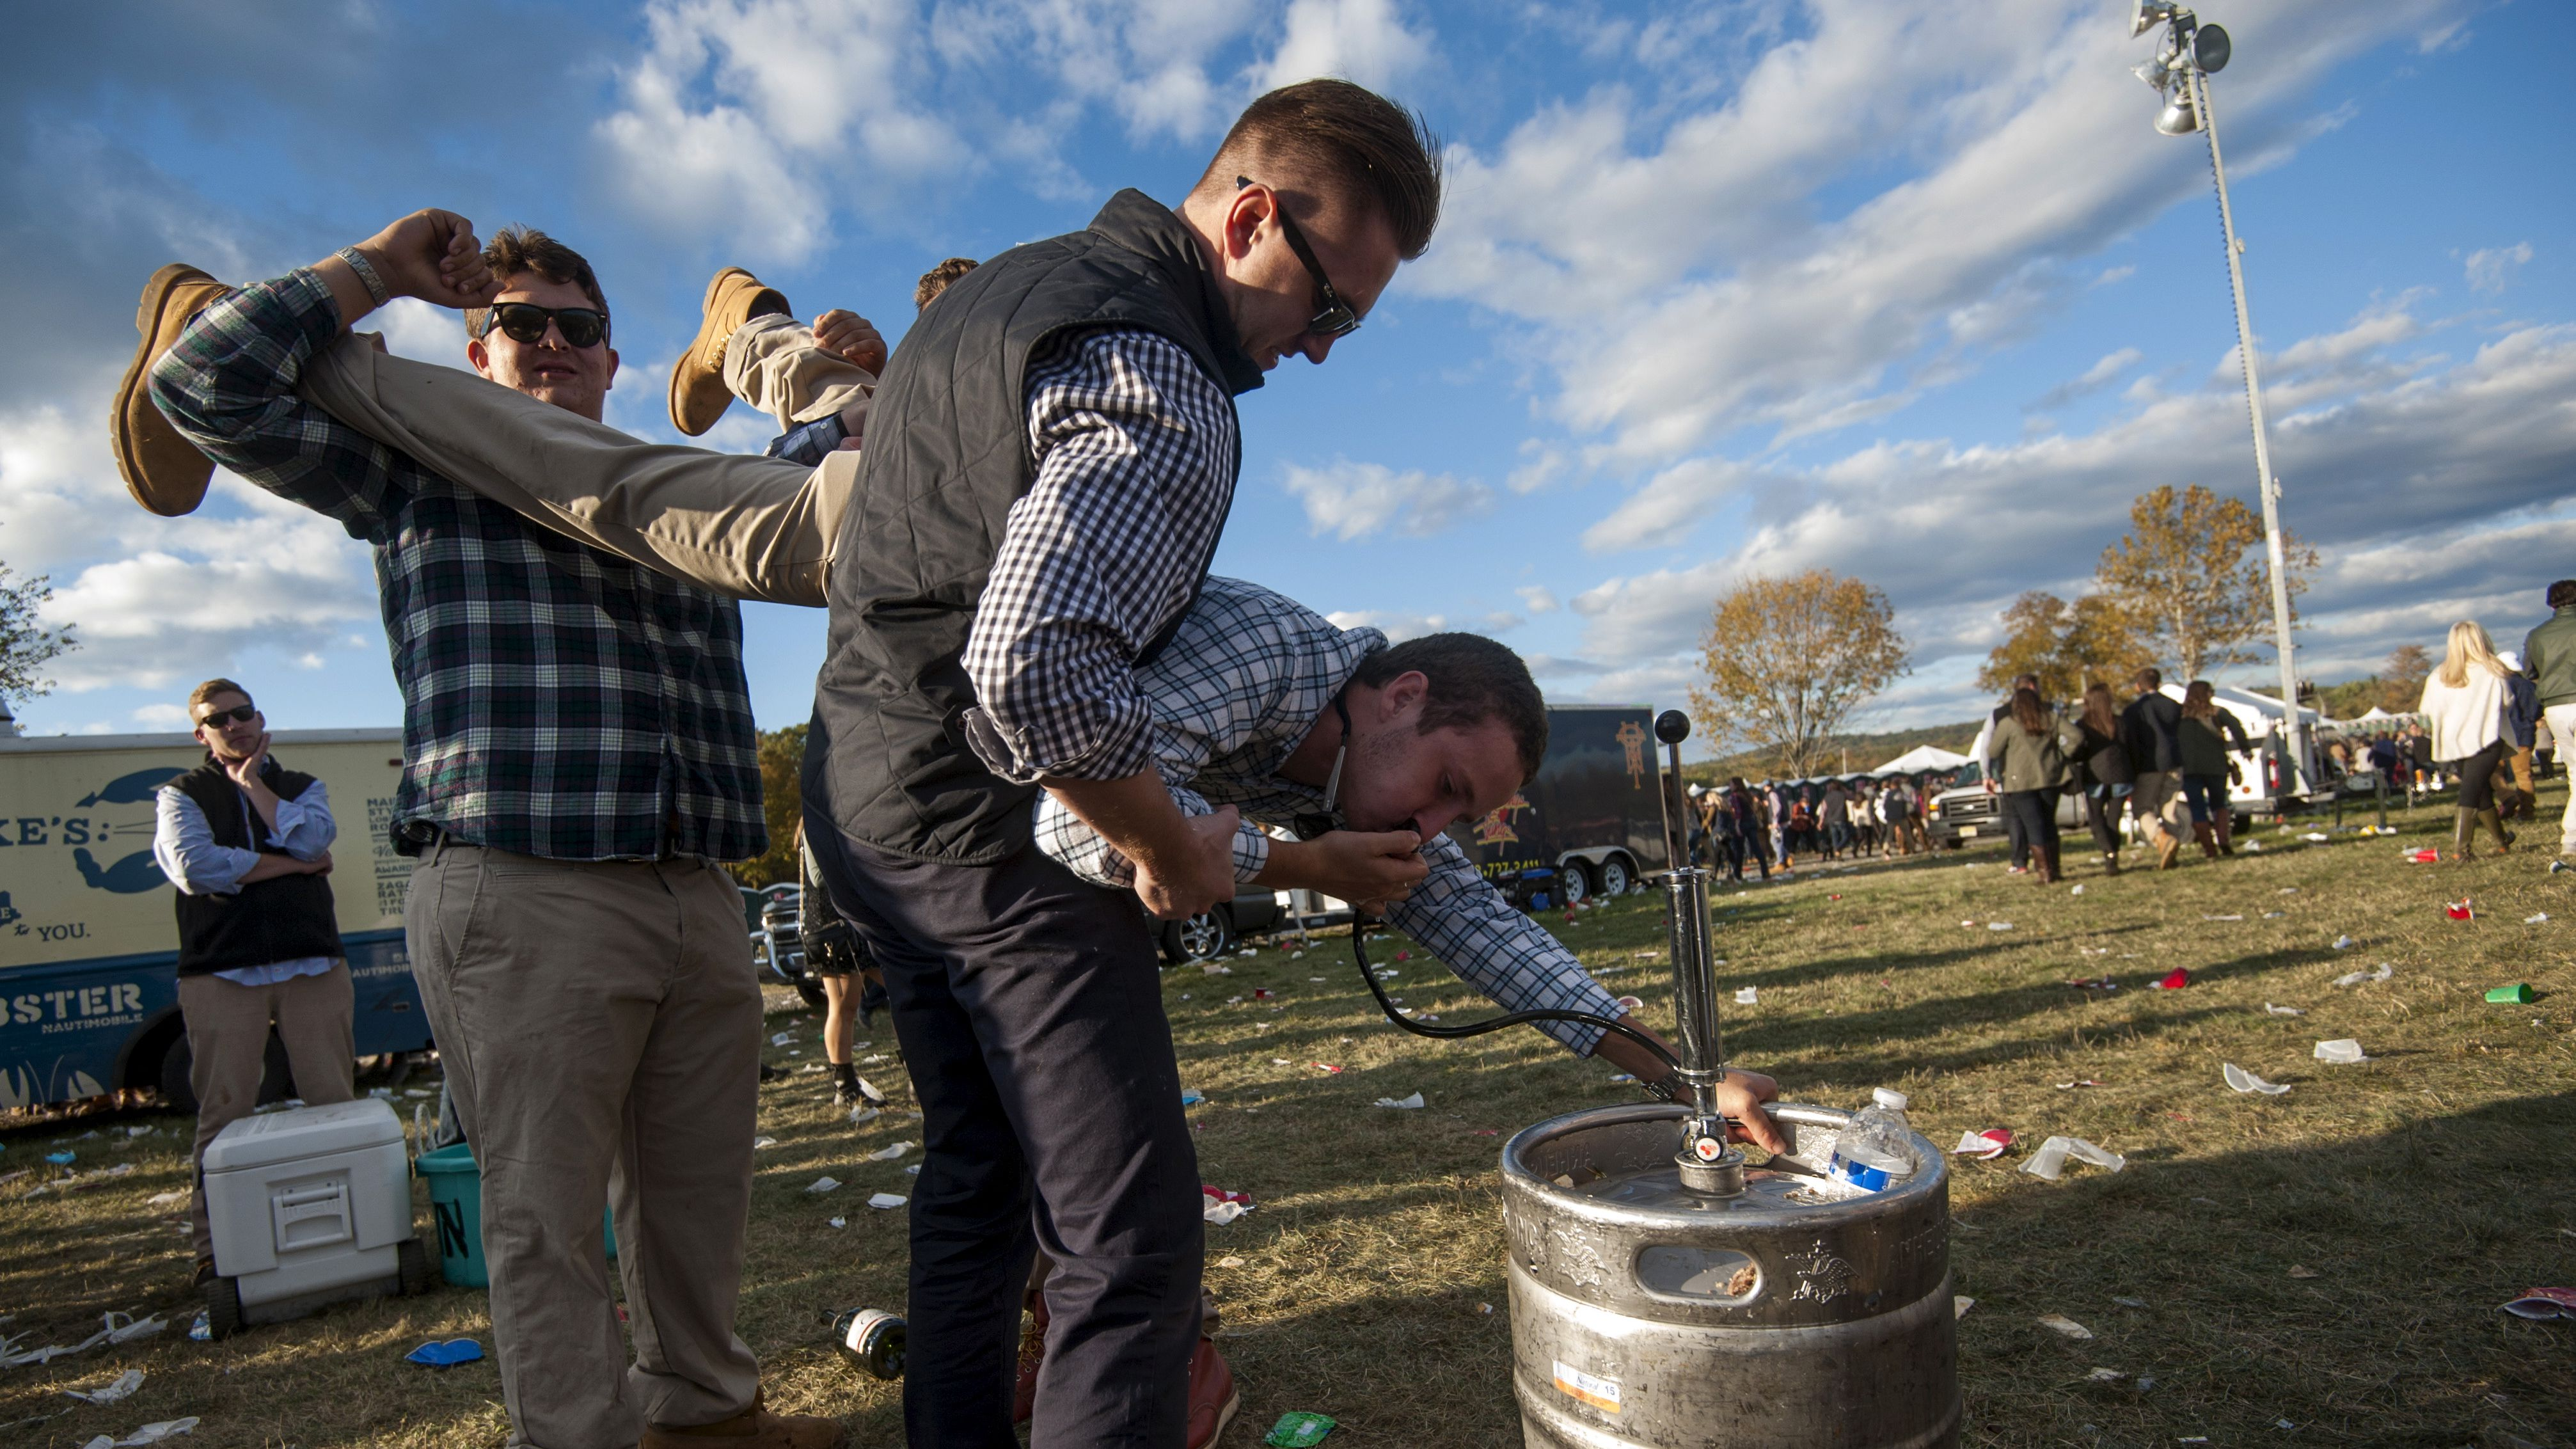 A man is held by friends as he drinks from a beer keg at the Far Hills Race Day at Moorland Farms in Far Hills, New Jersey, October 17, 2015. Young locals in New Jersey catch up with friends from school and college days at the Far Hills Race Day, which started as a fox-hunting event in the early 1900s. Many racegoers first went to the Hunt, as it's known locally, as children, but nowadays it's an alcohol-fuelled party for them. Makeshift bars are set up in cars, with the horses' efforts on the turf sometimes a backdrop to the main event. REUTERS/Stephanie Keith